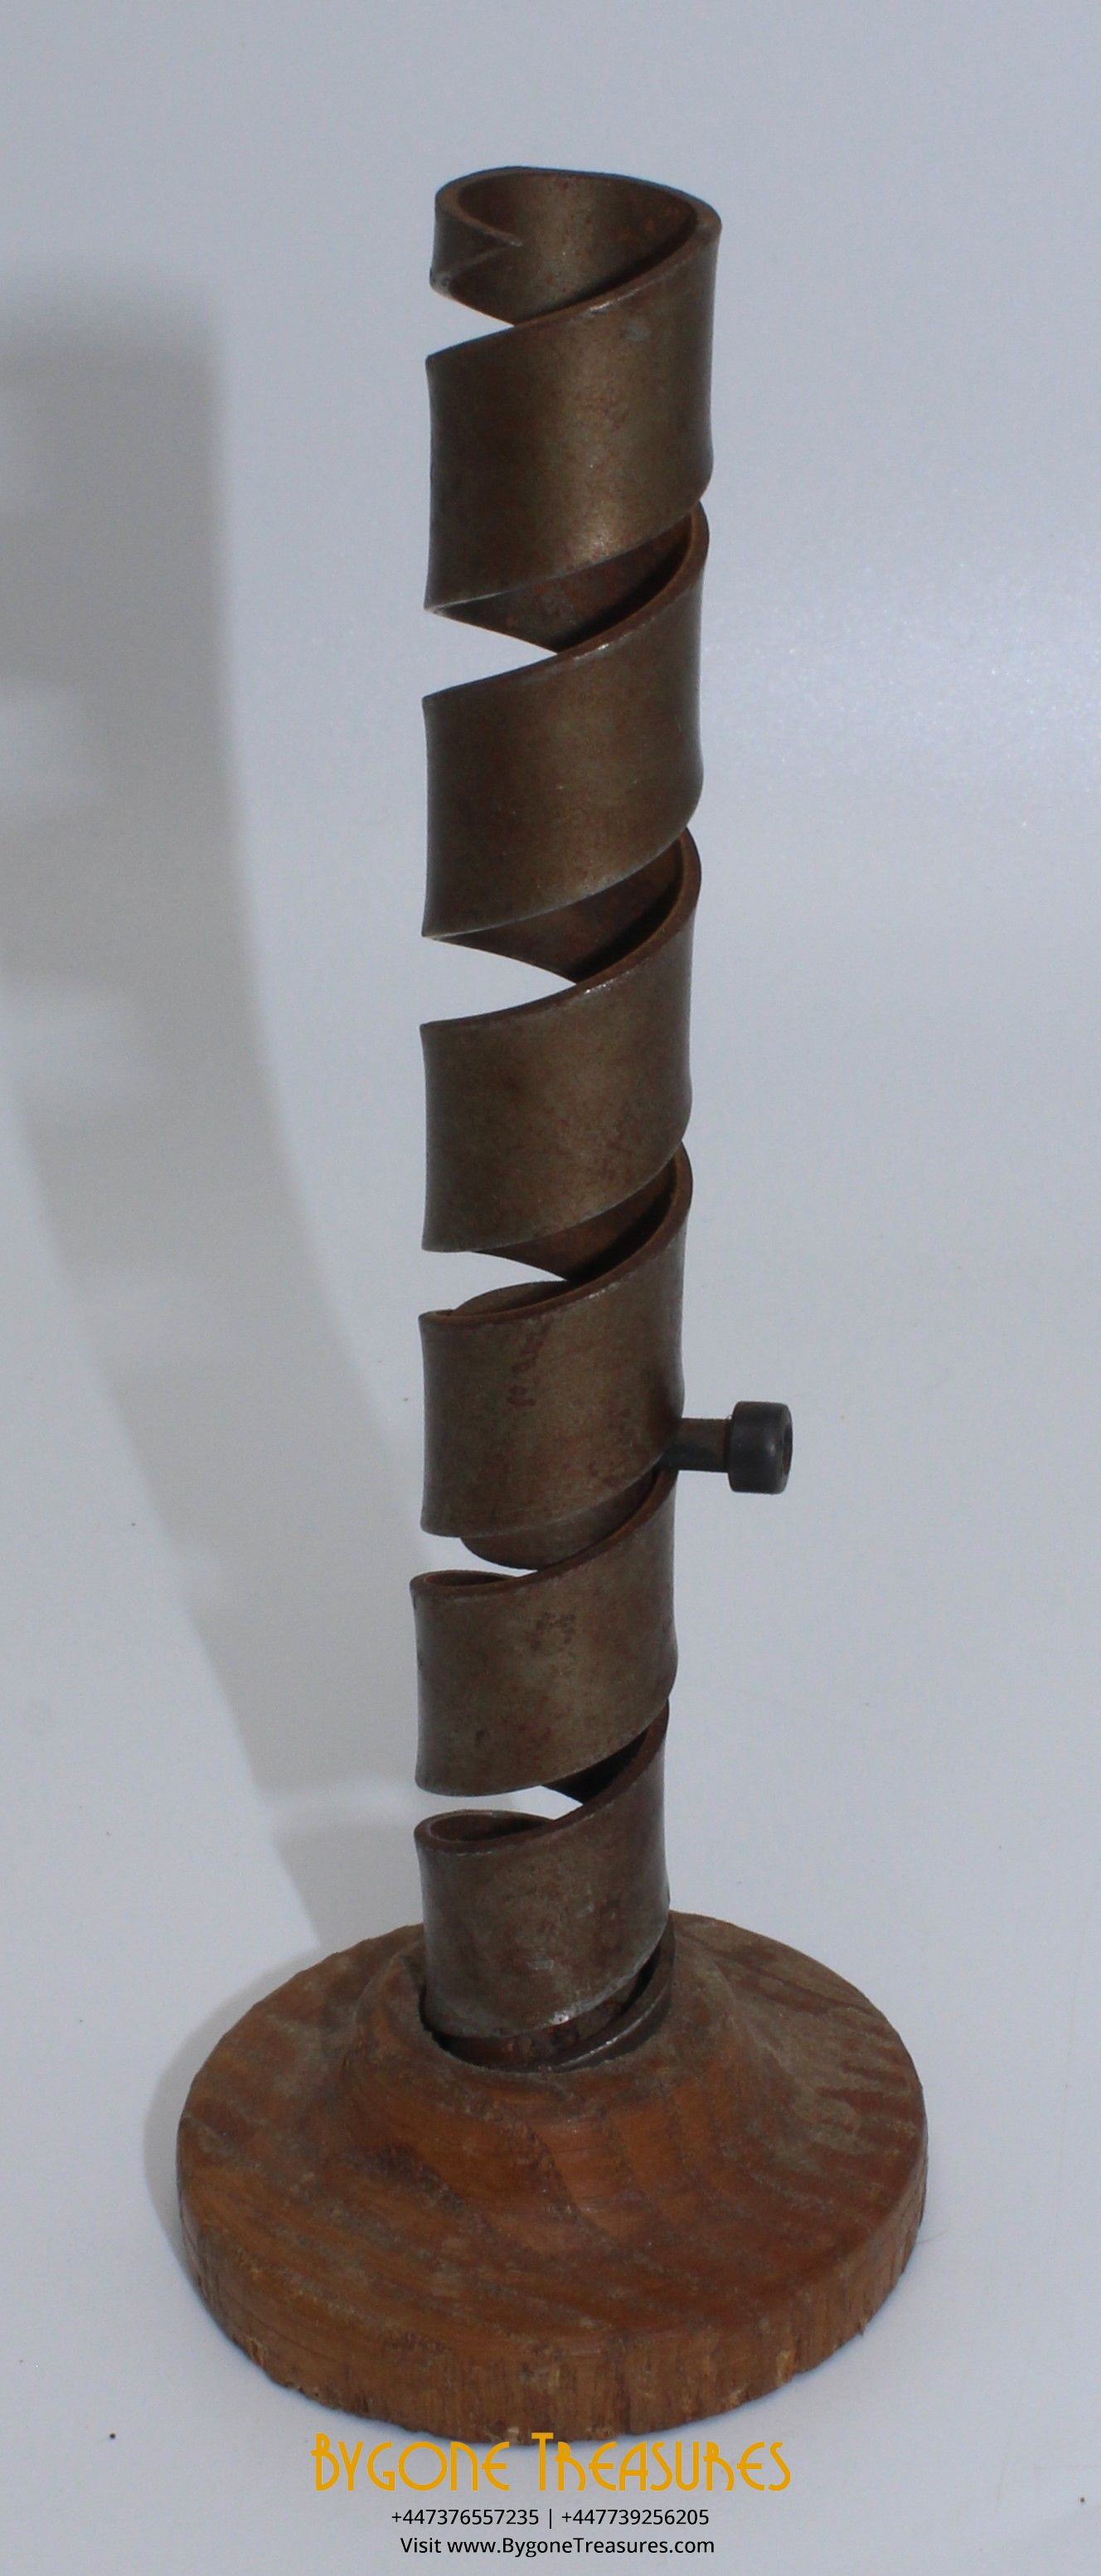 Late 18th Century French Wine Cave Candle Stick with turned wooden base (1)